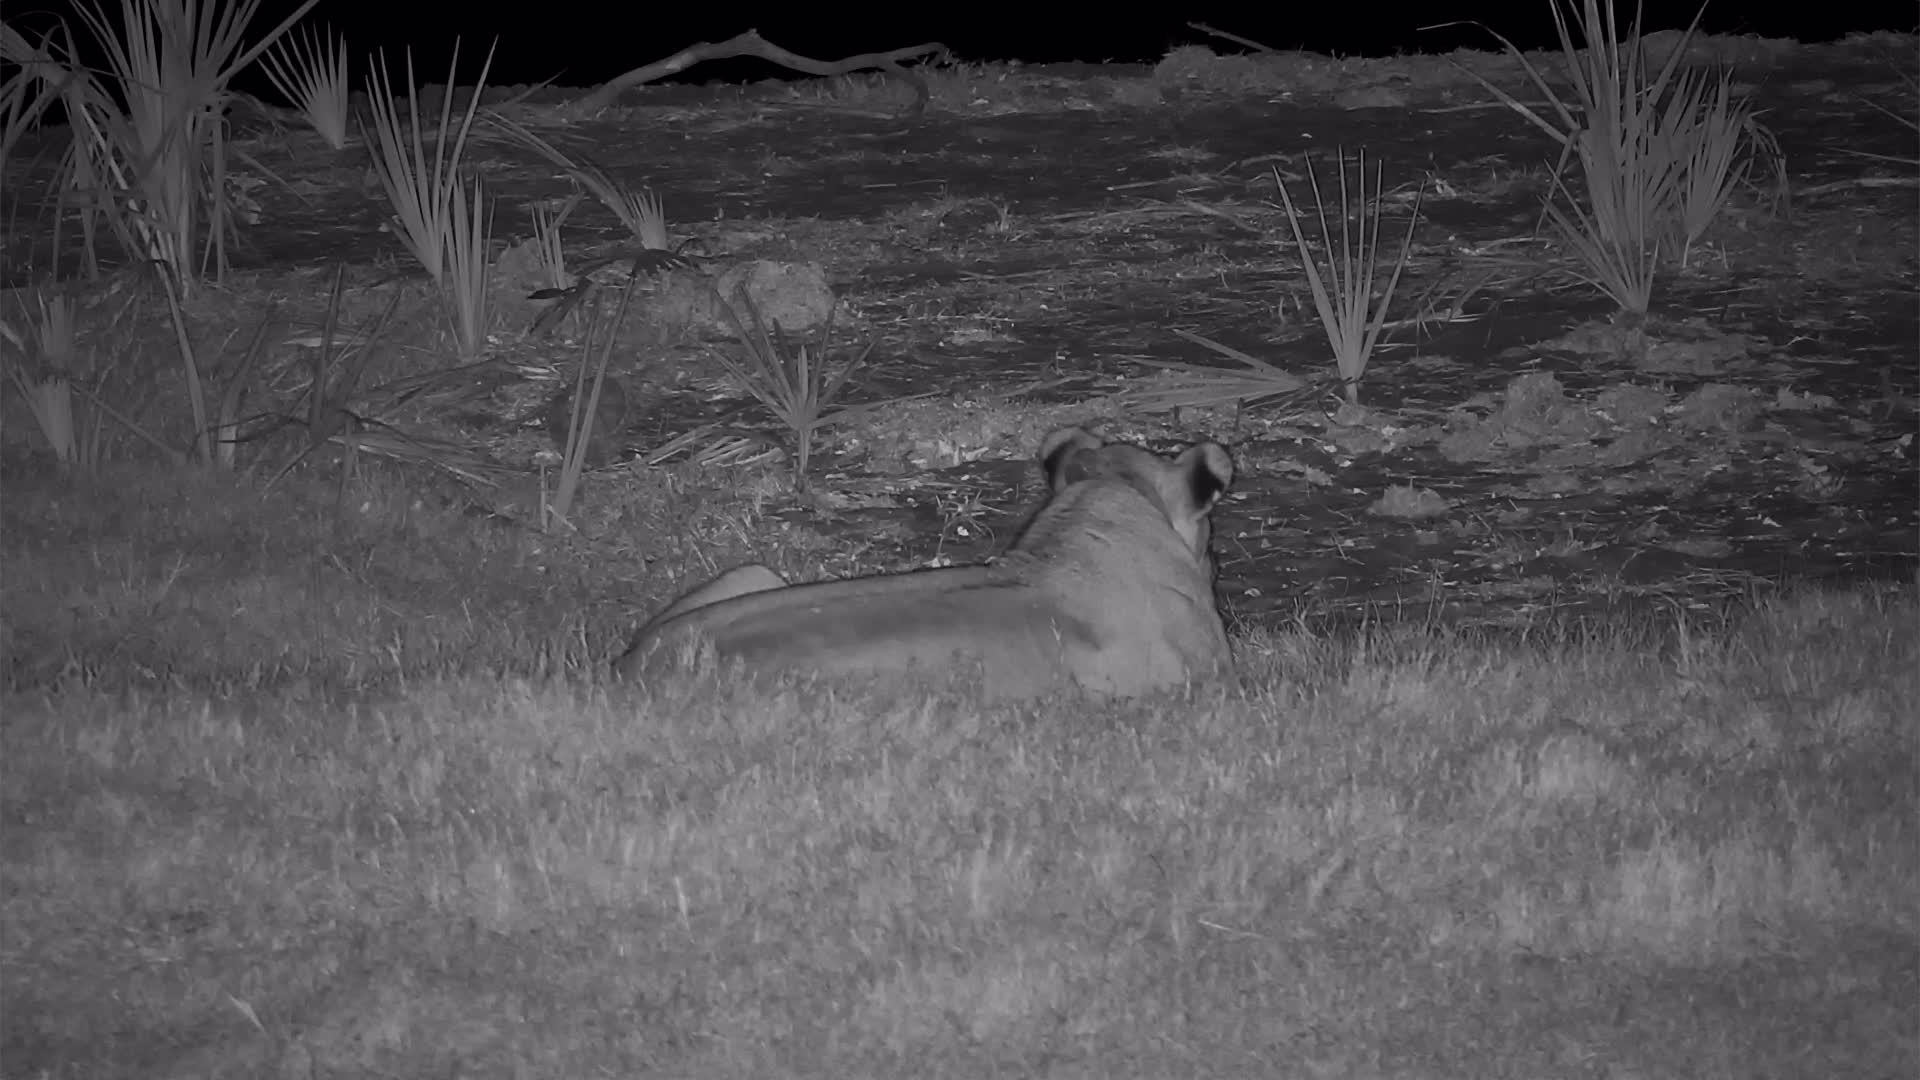 VIDEO: Lion at the waterhole roaring